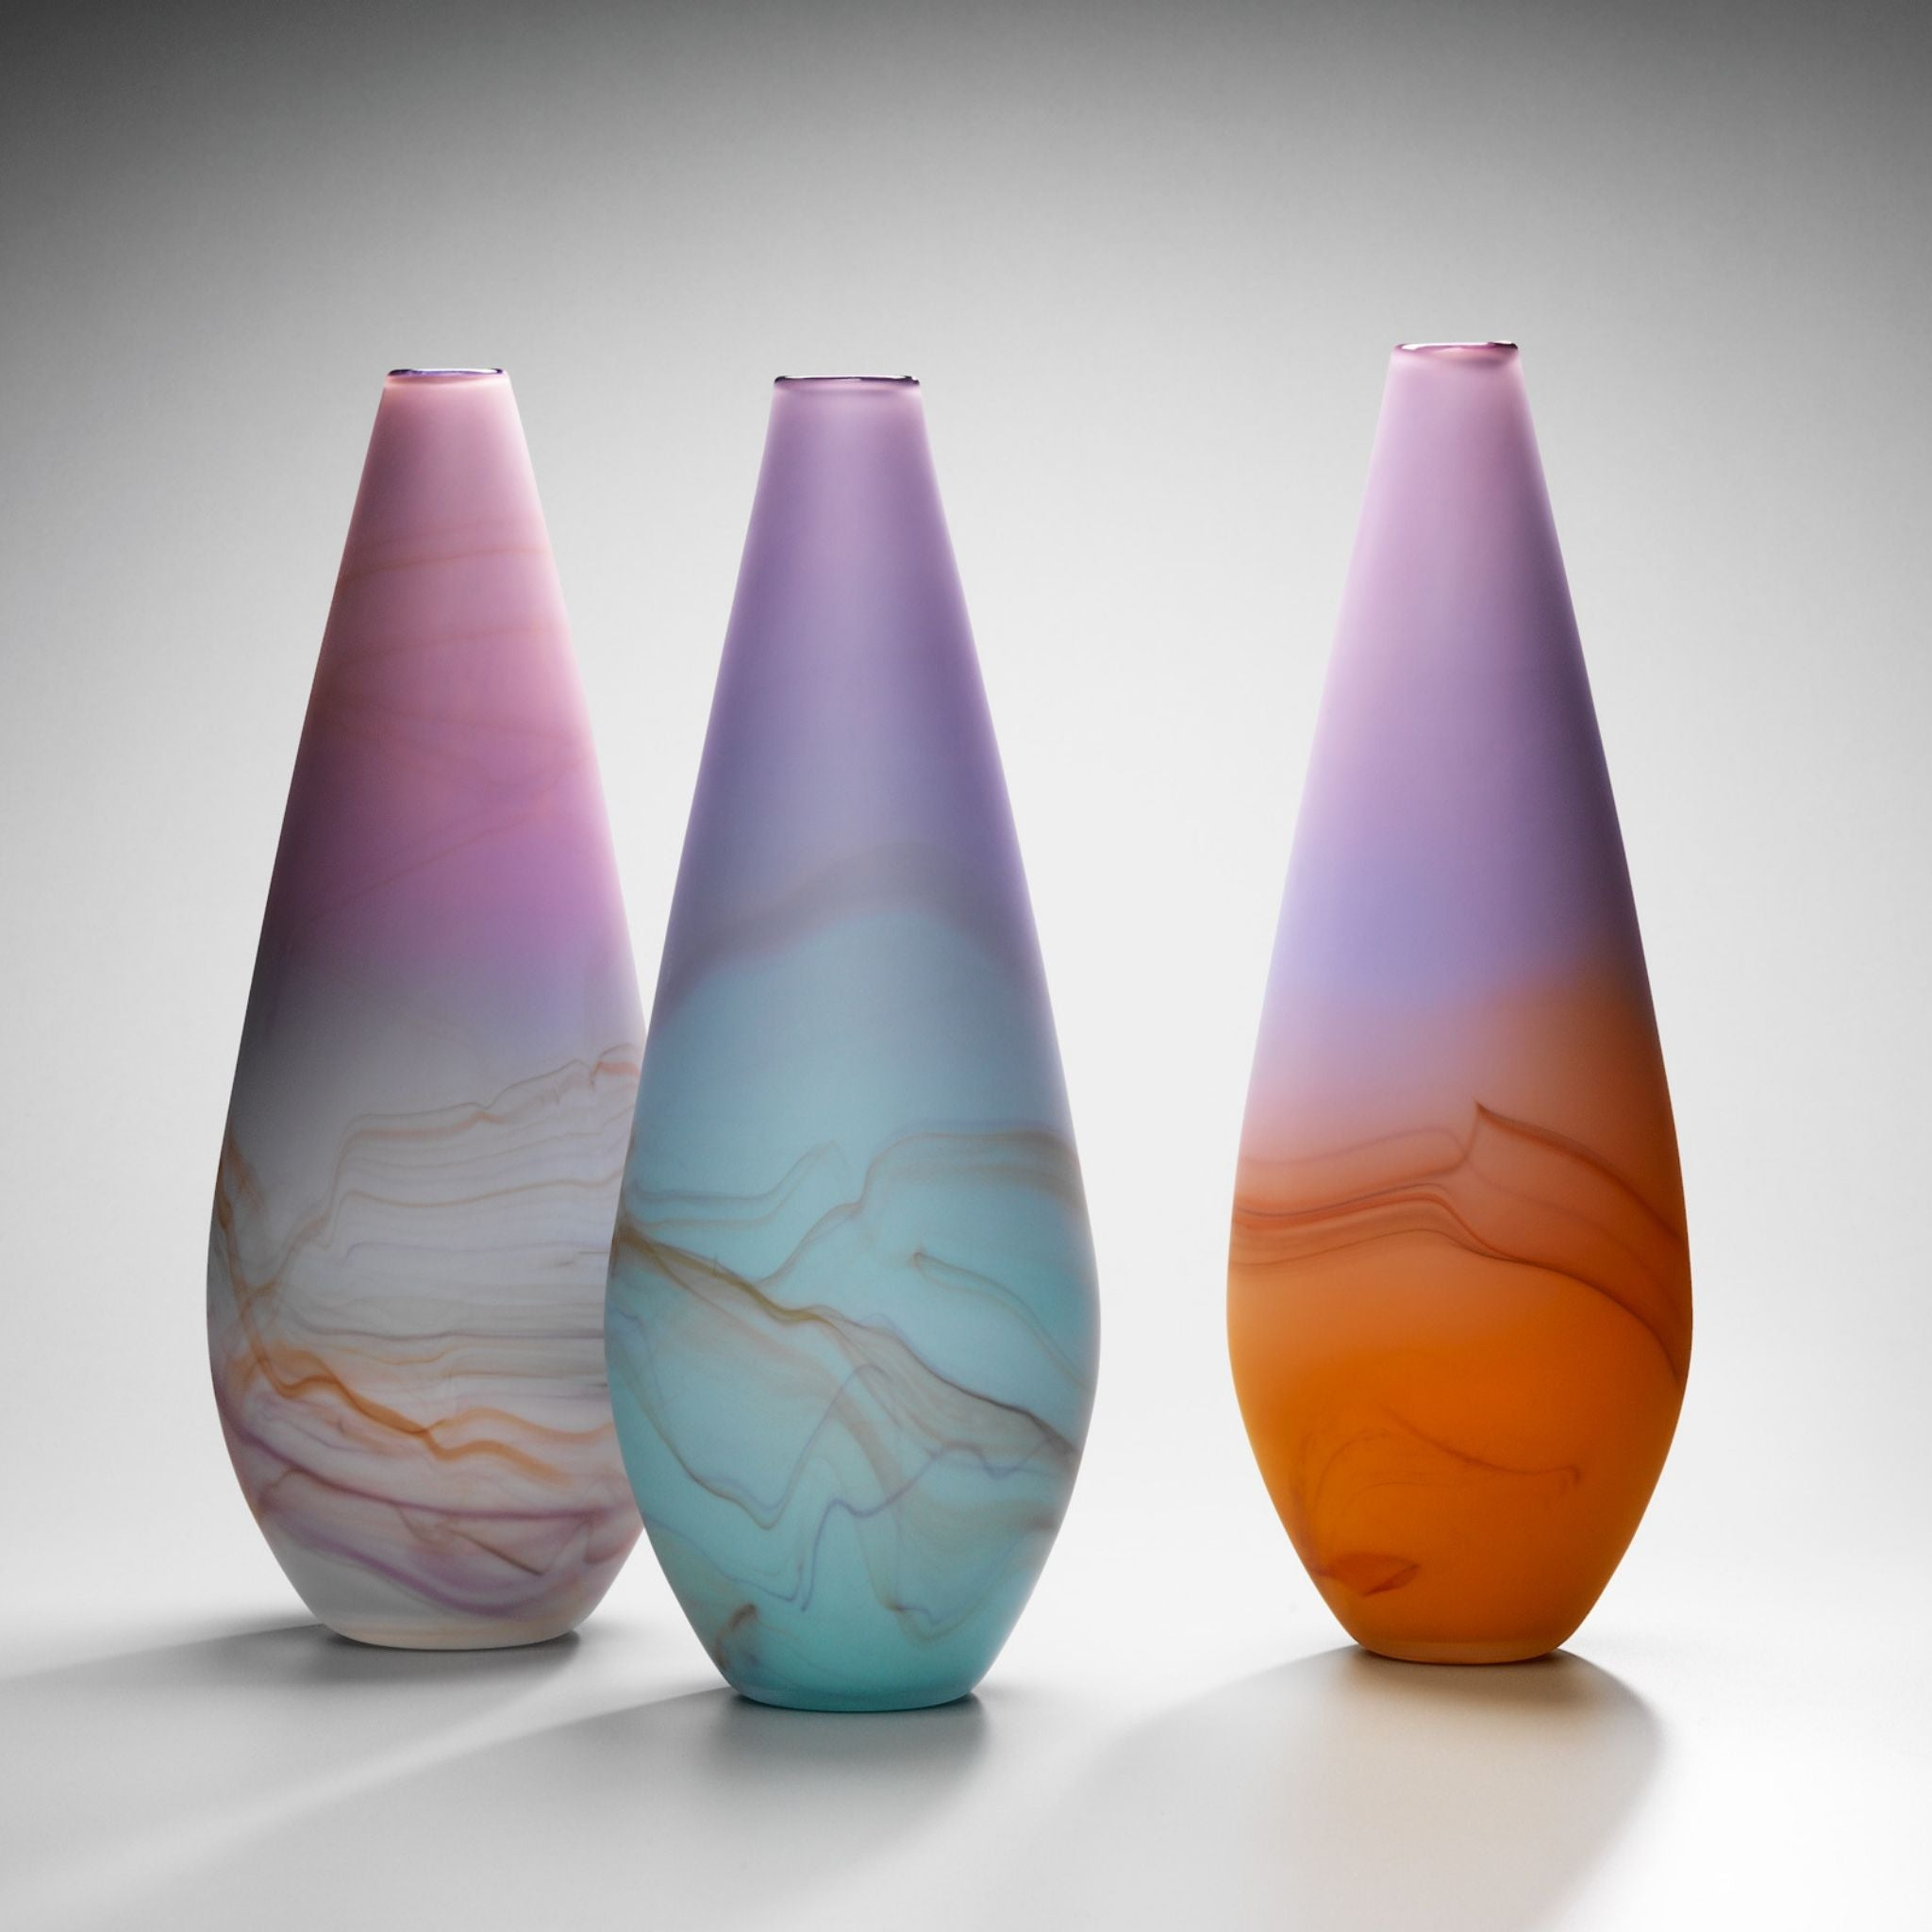 Sunset Sunrise Large Vase Sculpture | Handmade by Llewelyn Ash - CoCo Contemporary Connoisseur Gift Store